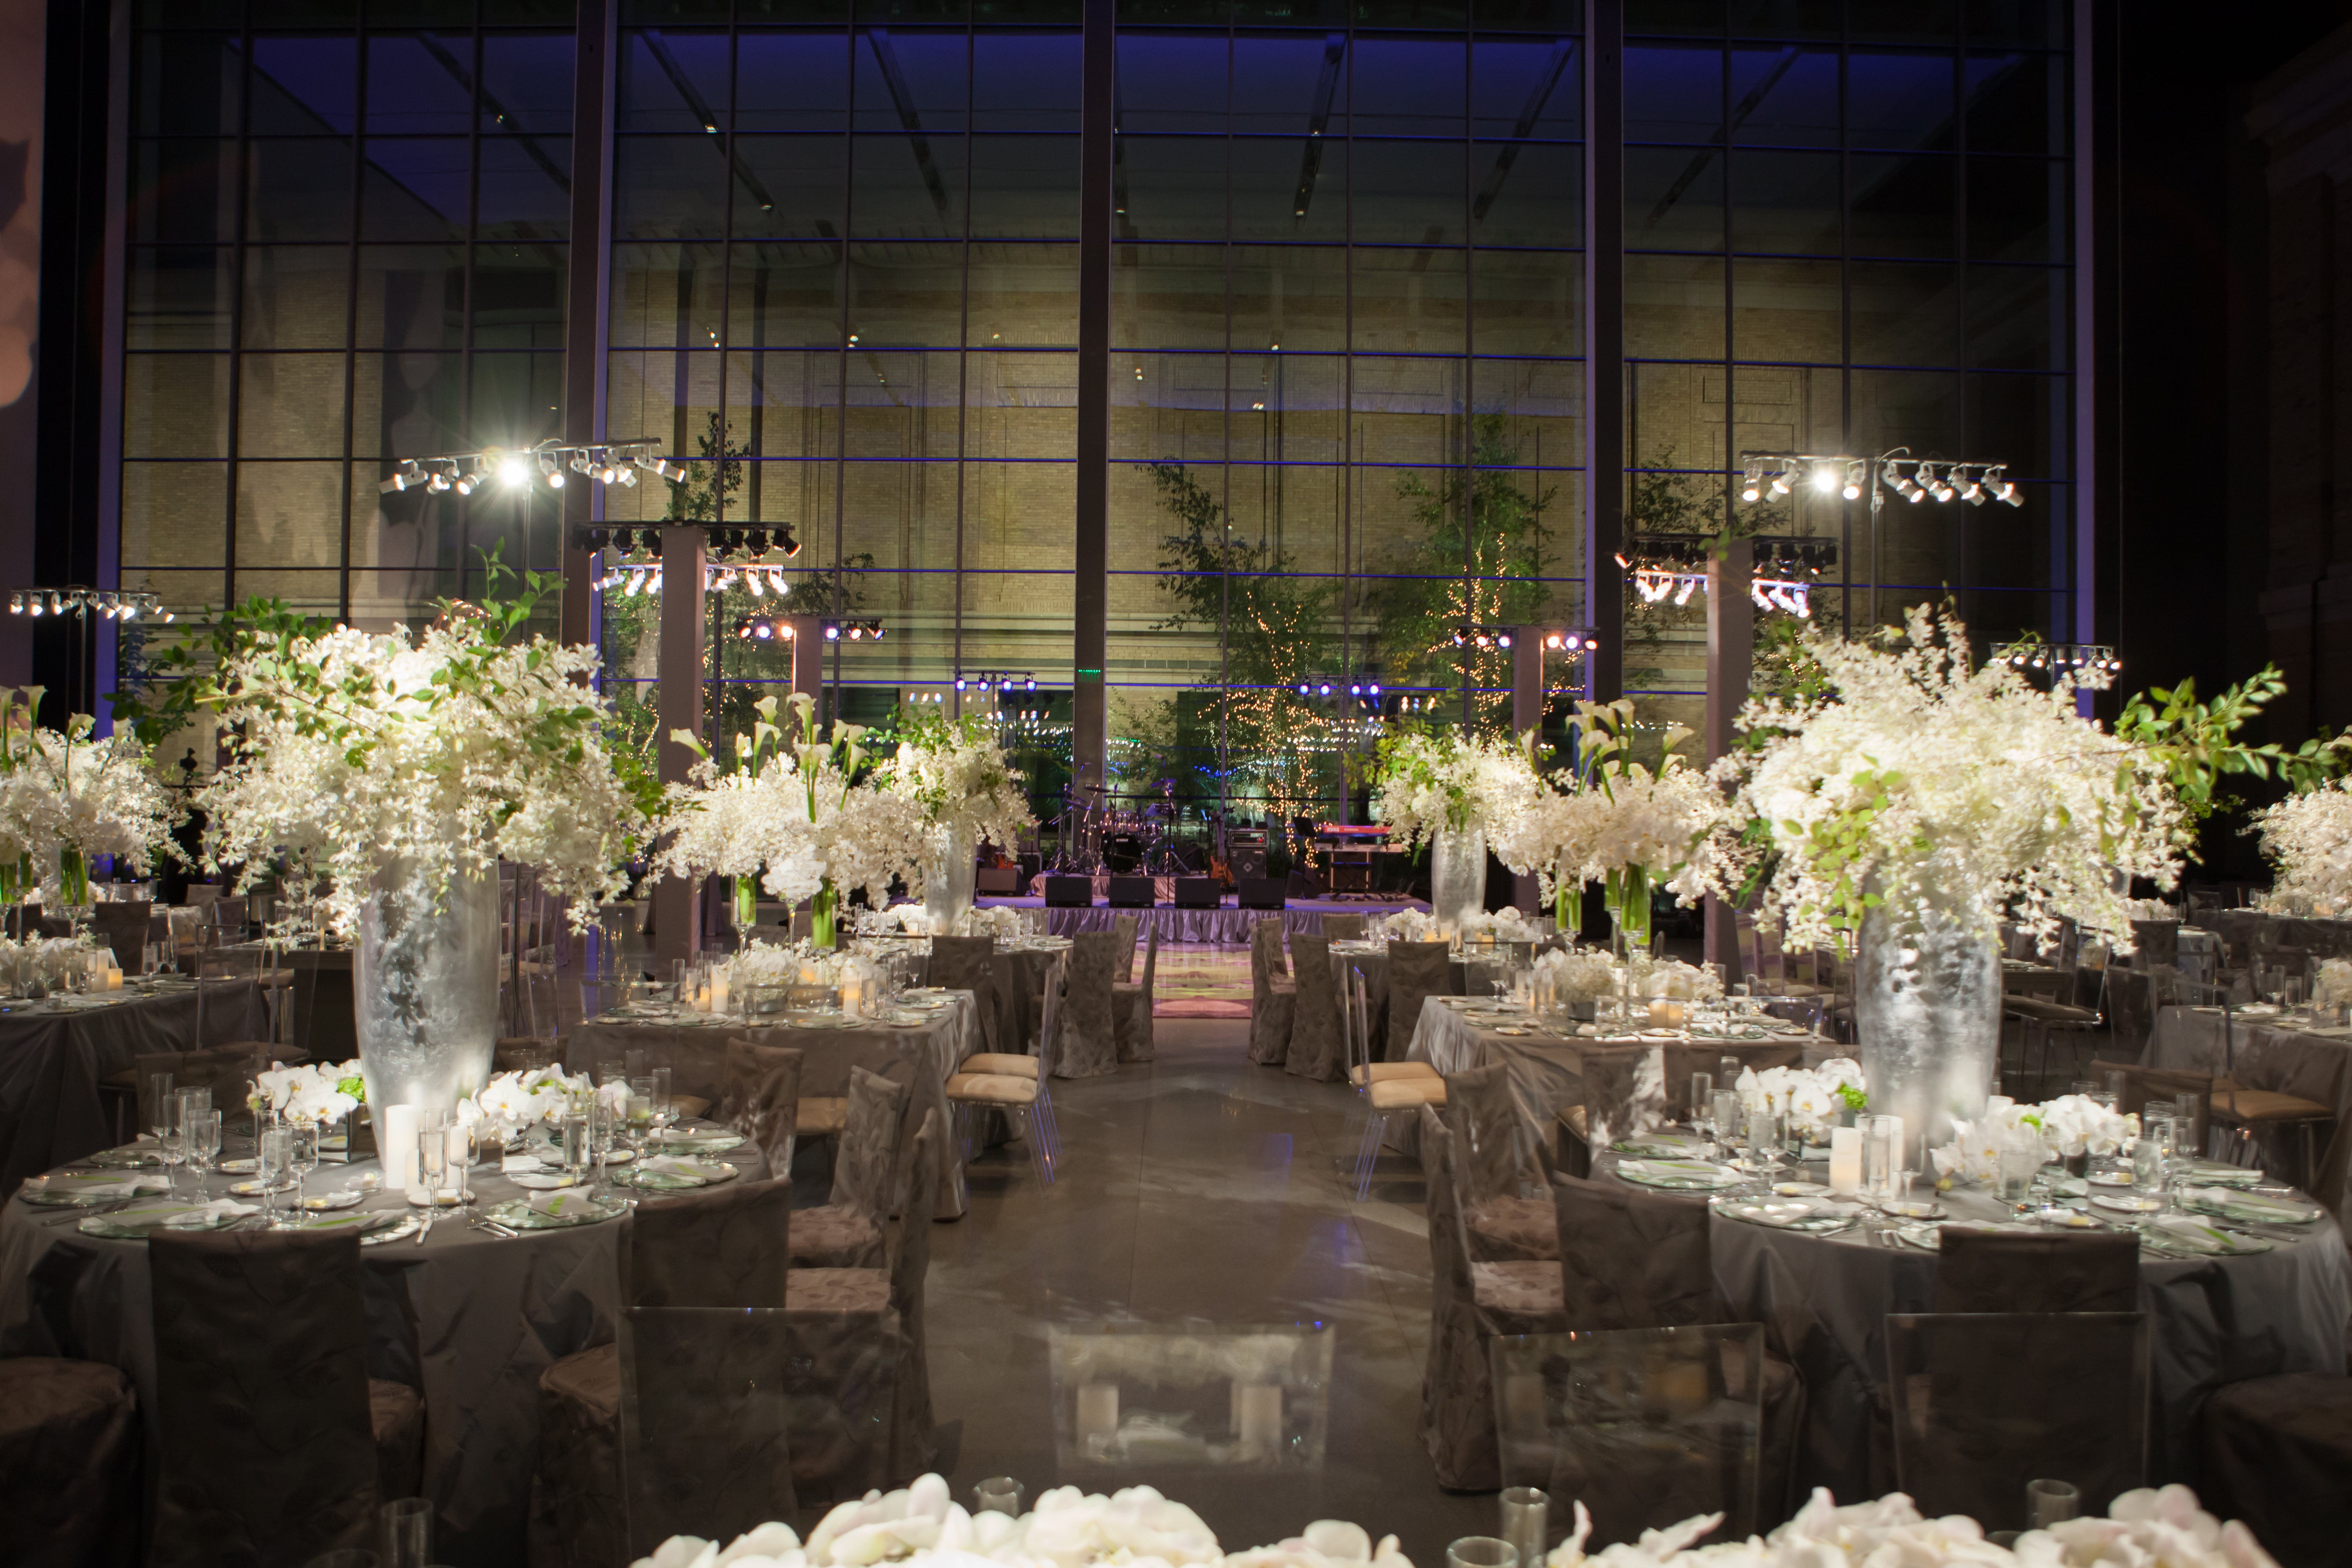 Fall Wedding at the Museum of Fine Arts - Suzanne B. Lowell Lighting Design